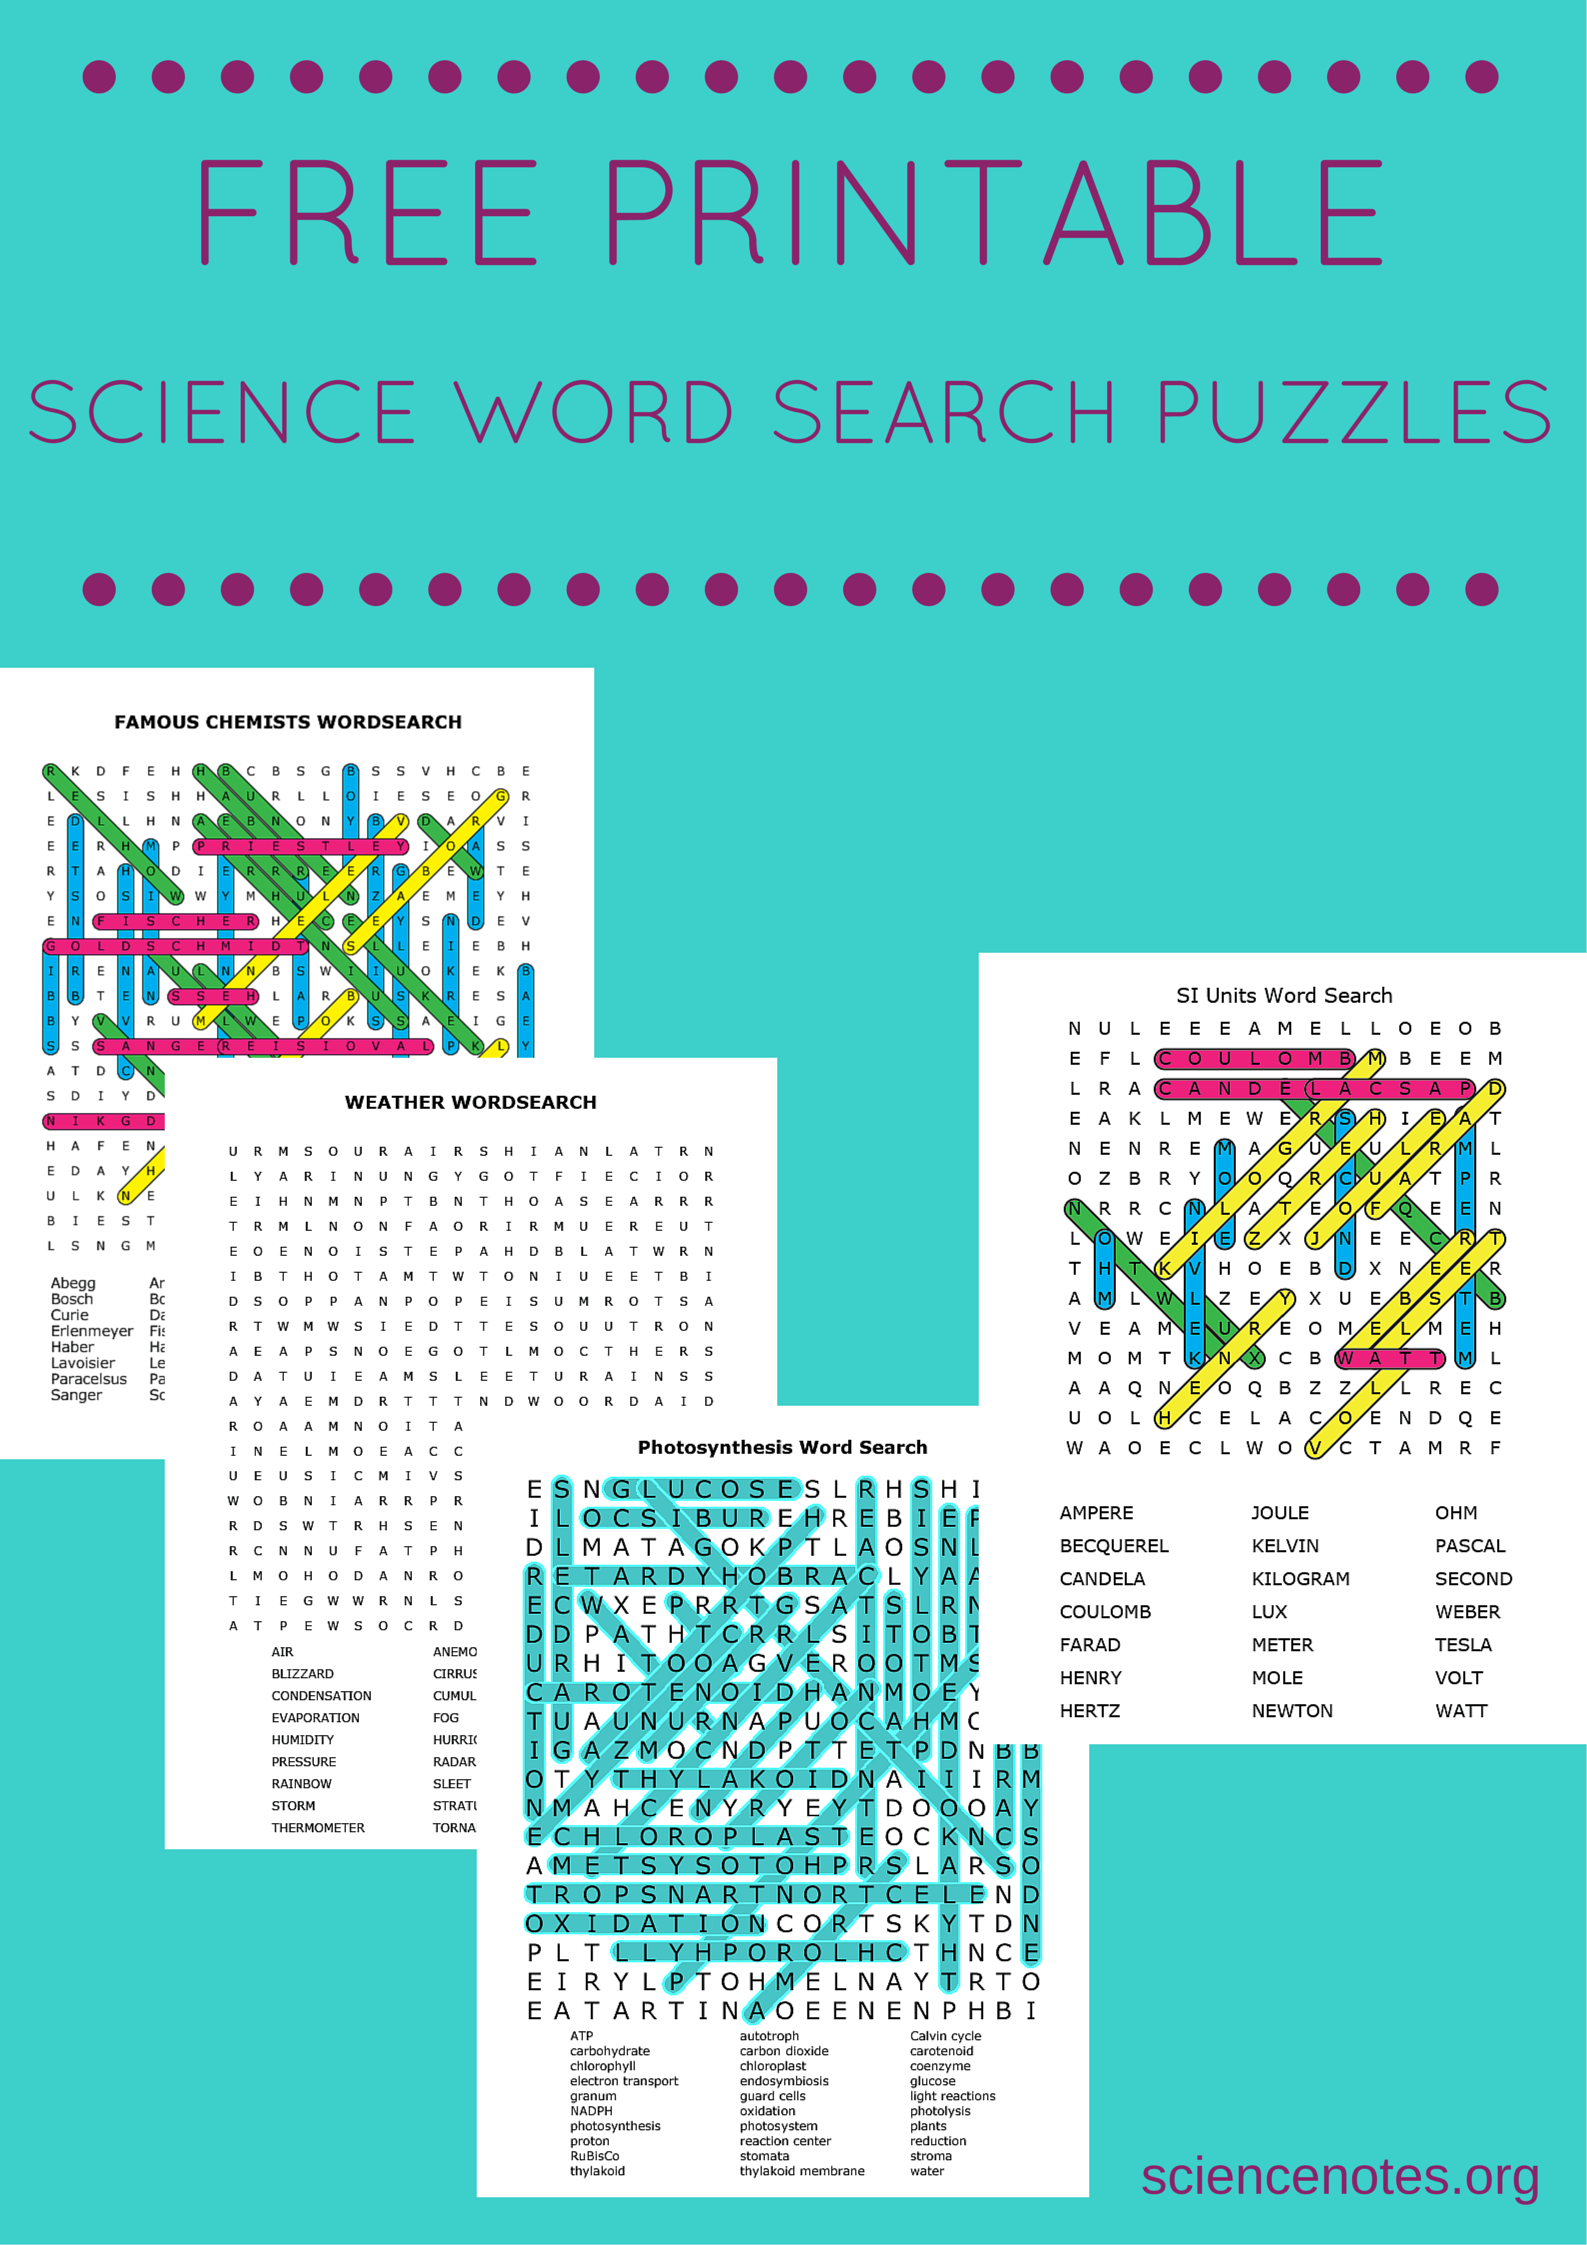 Free Printable Science Puzzles